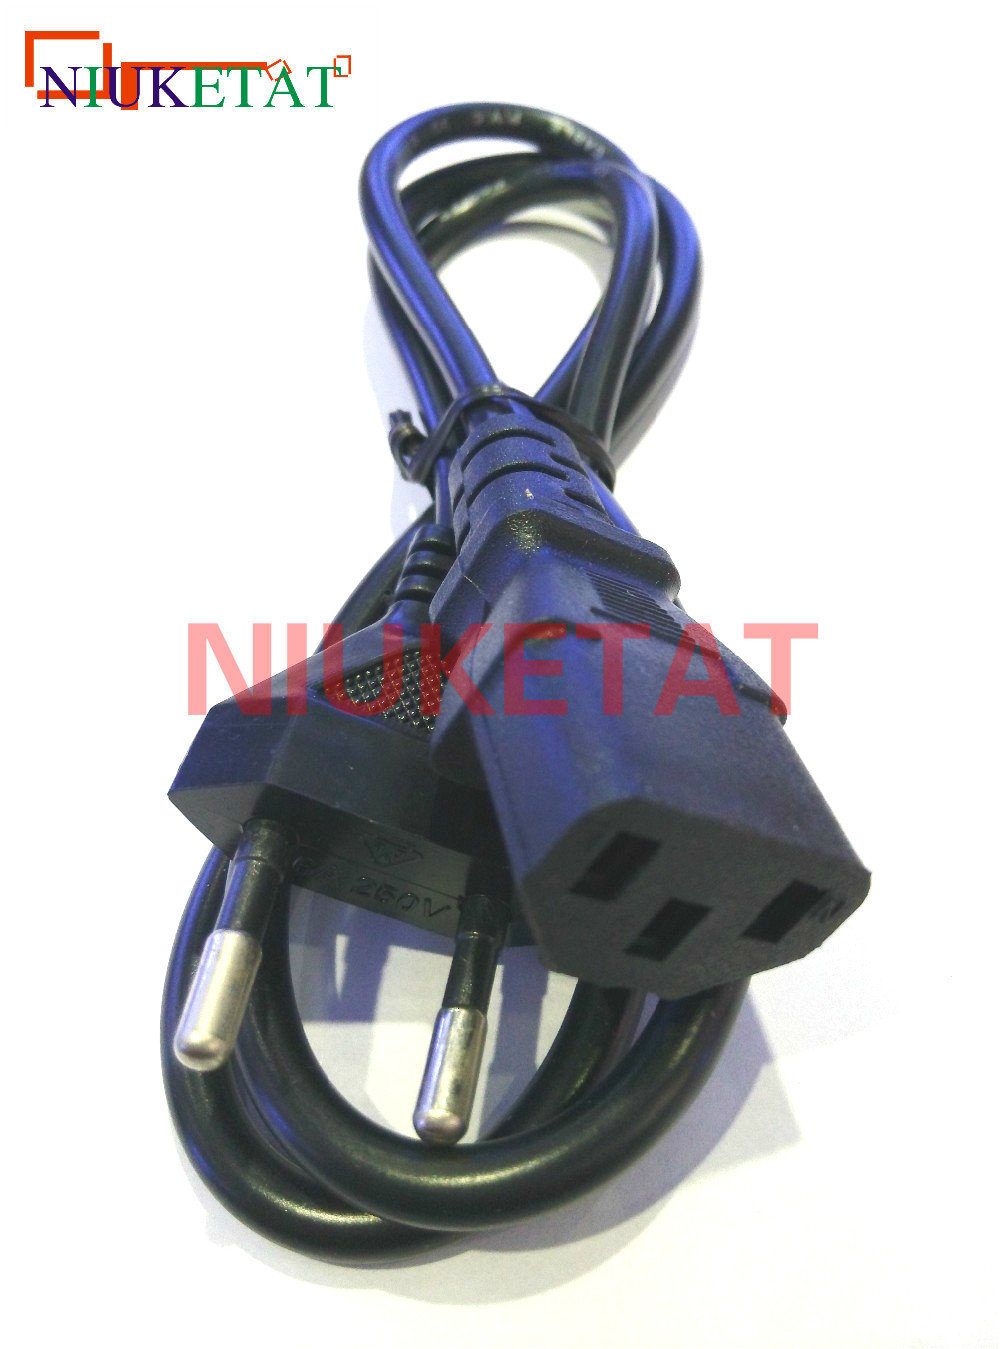 1pcs EU Plug <font><b>AC</b></font> <font><b>Power</b></font> Cord <font><b>Cable</b></font> 1m 100cm <font><b>3</b></font> plug contacts LED light 2835 5050 <font><b>power</b></font> adapter EU plug <font><b>cable</b></font> Charging line image